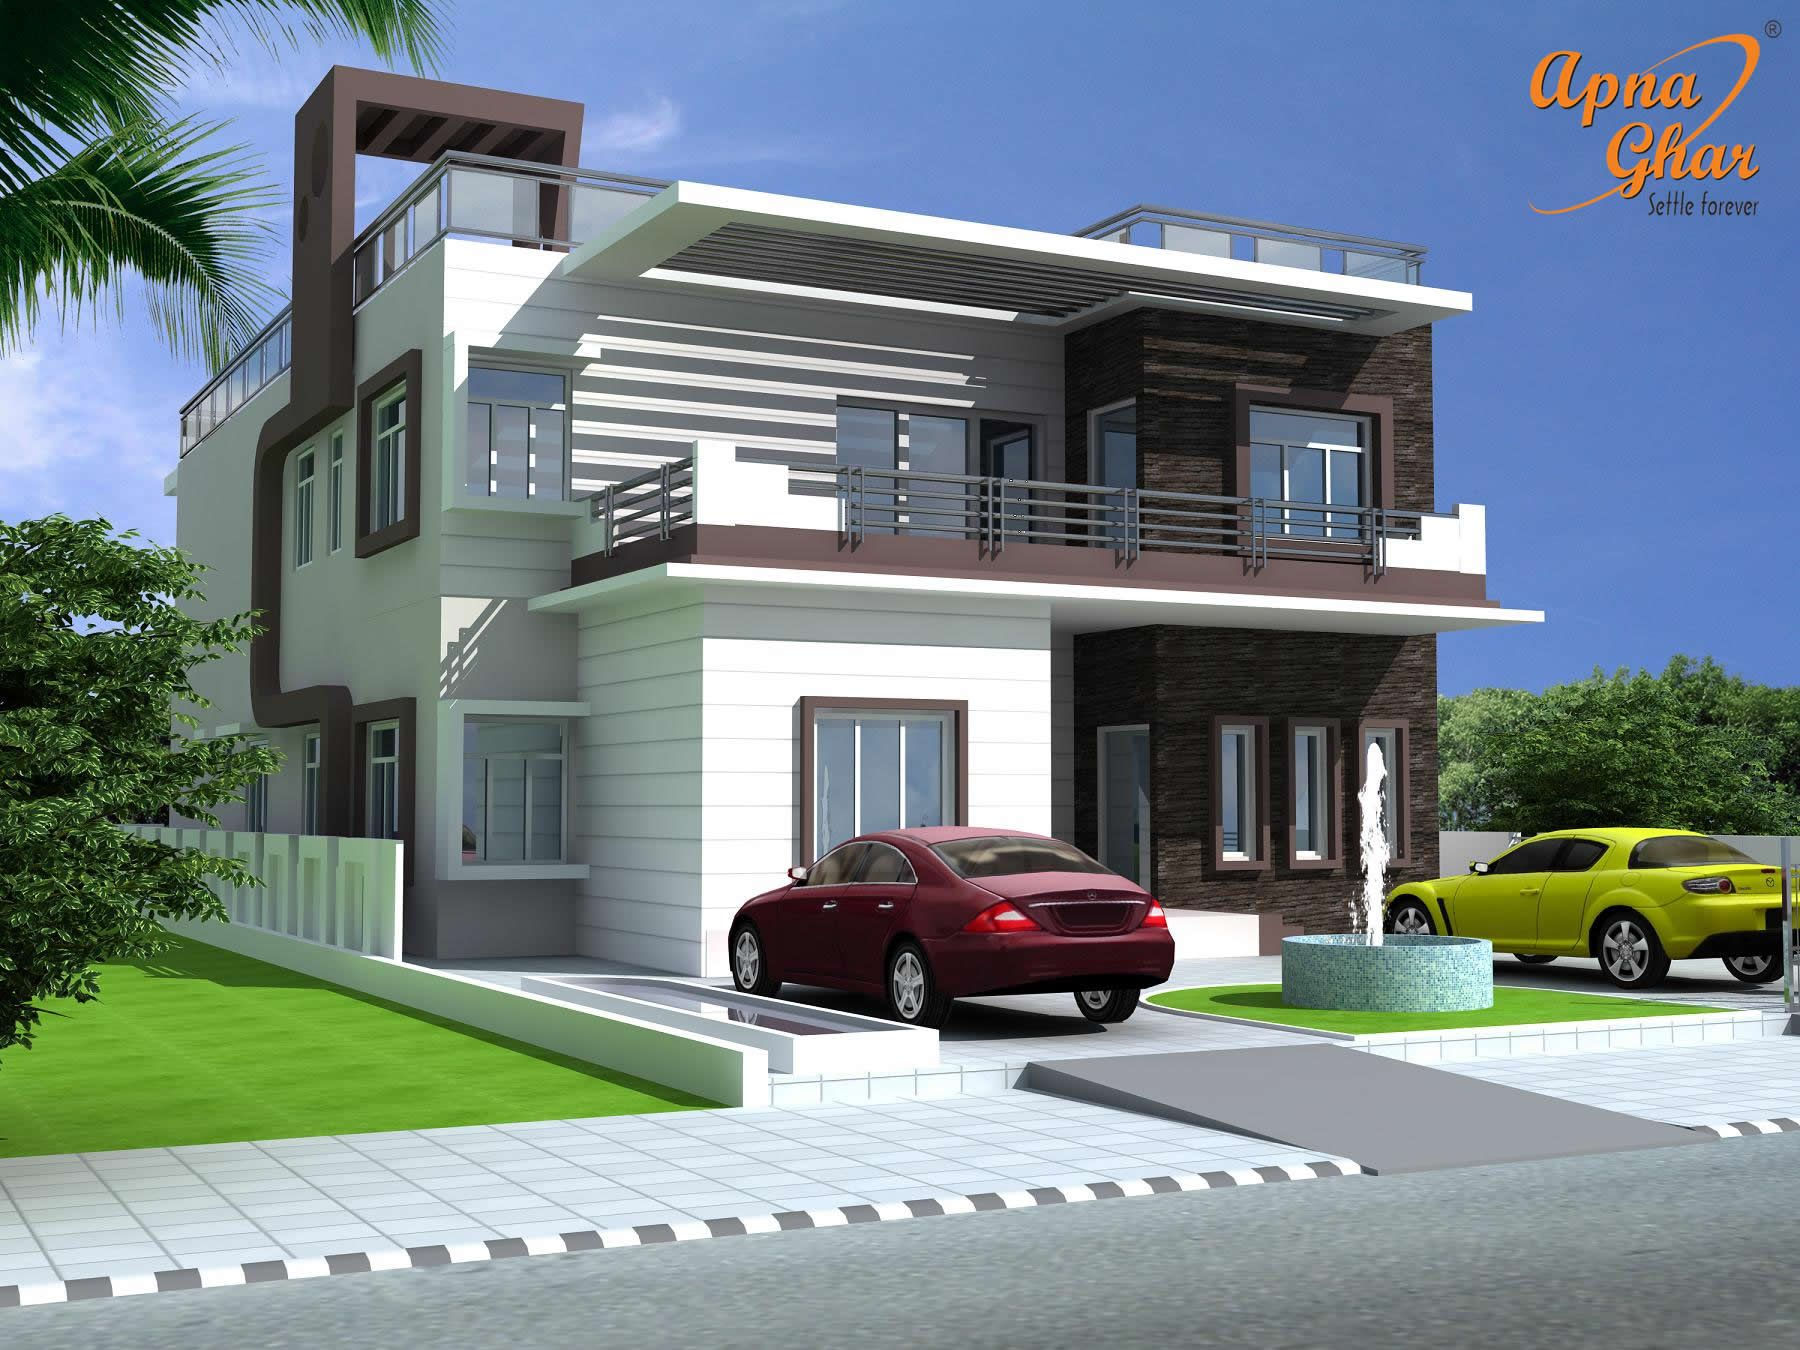 6 bedrooms duplex house design in 390m2 13m x 30m click New duplex designs